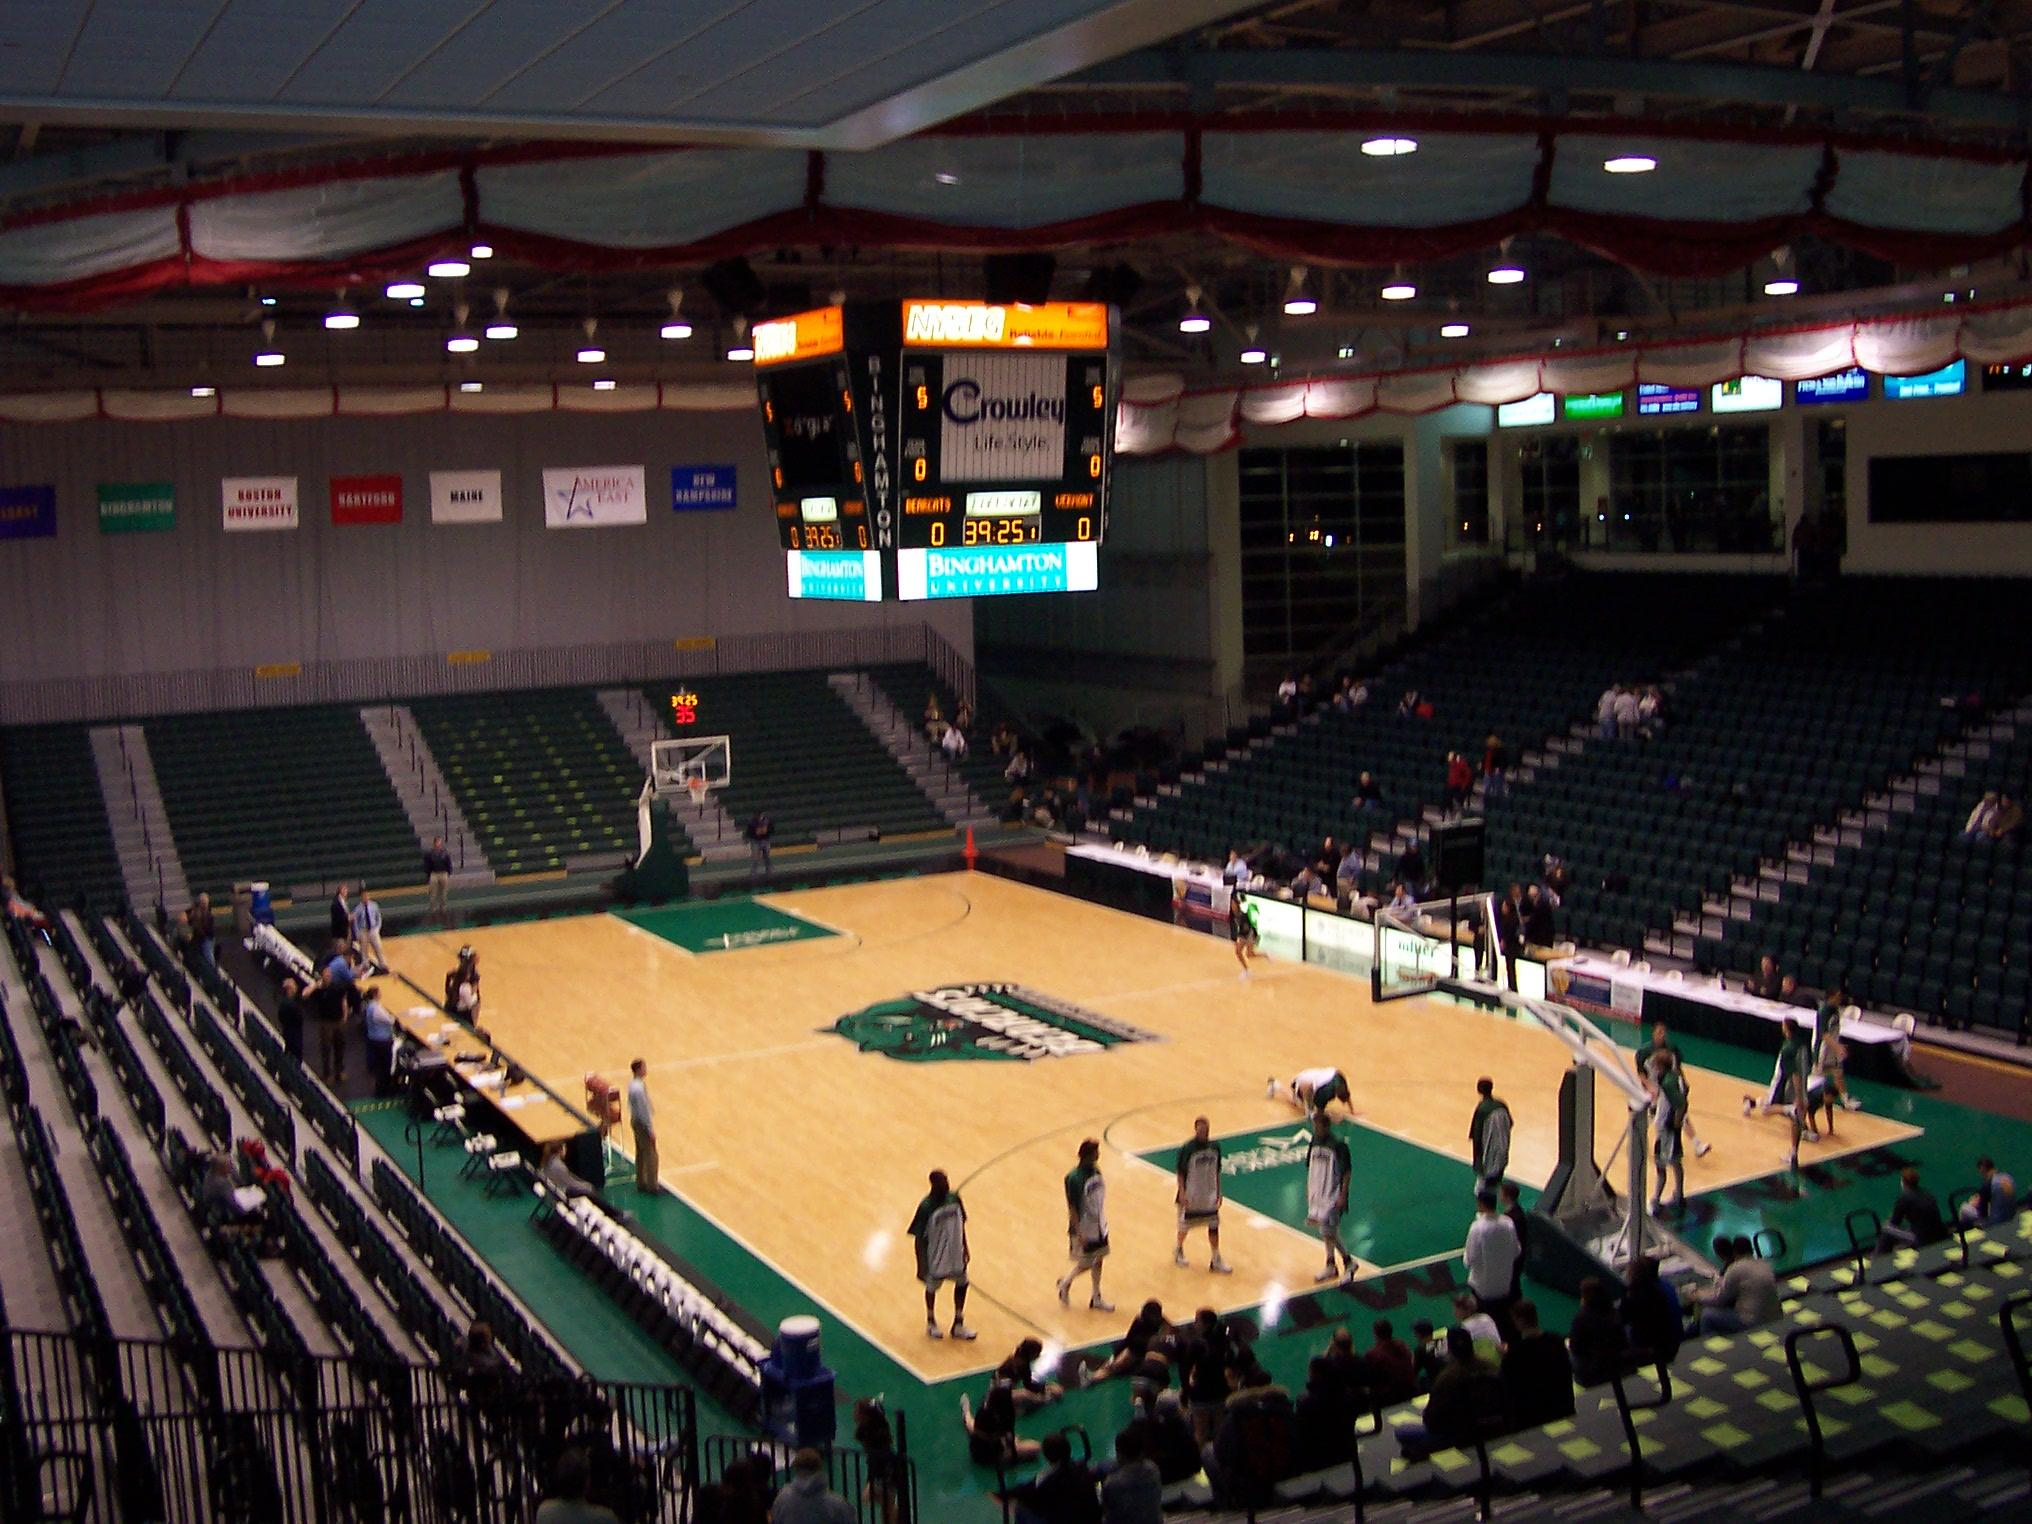 29 Events Center Stadium And Arena Visits